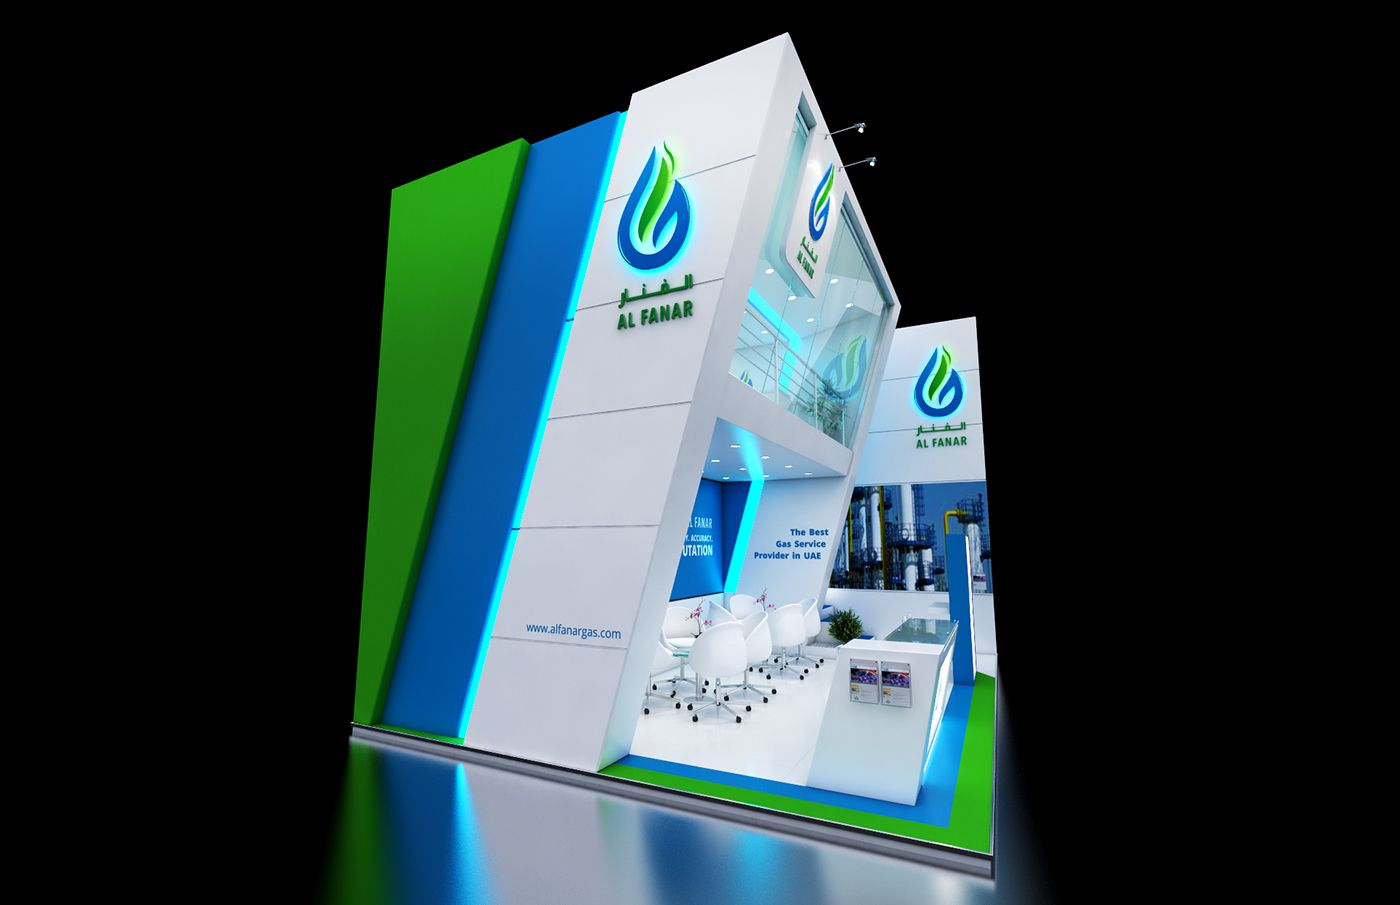 AL Fanar - Adipec Abu Dhabi 2015 on Behance